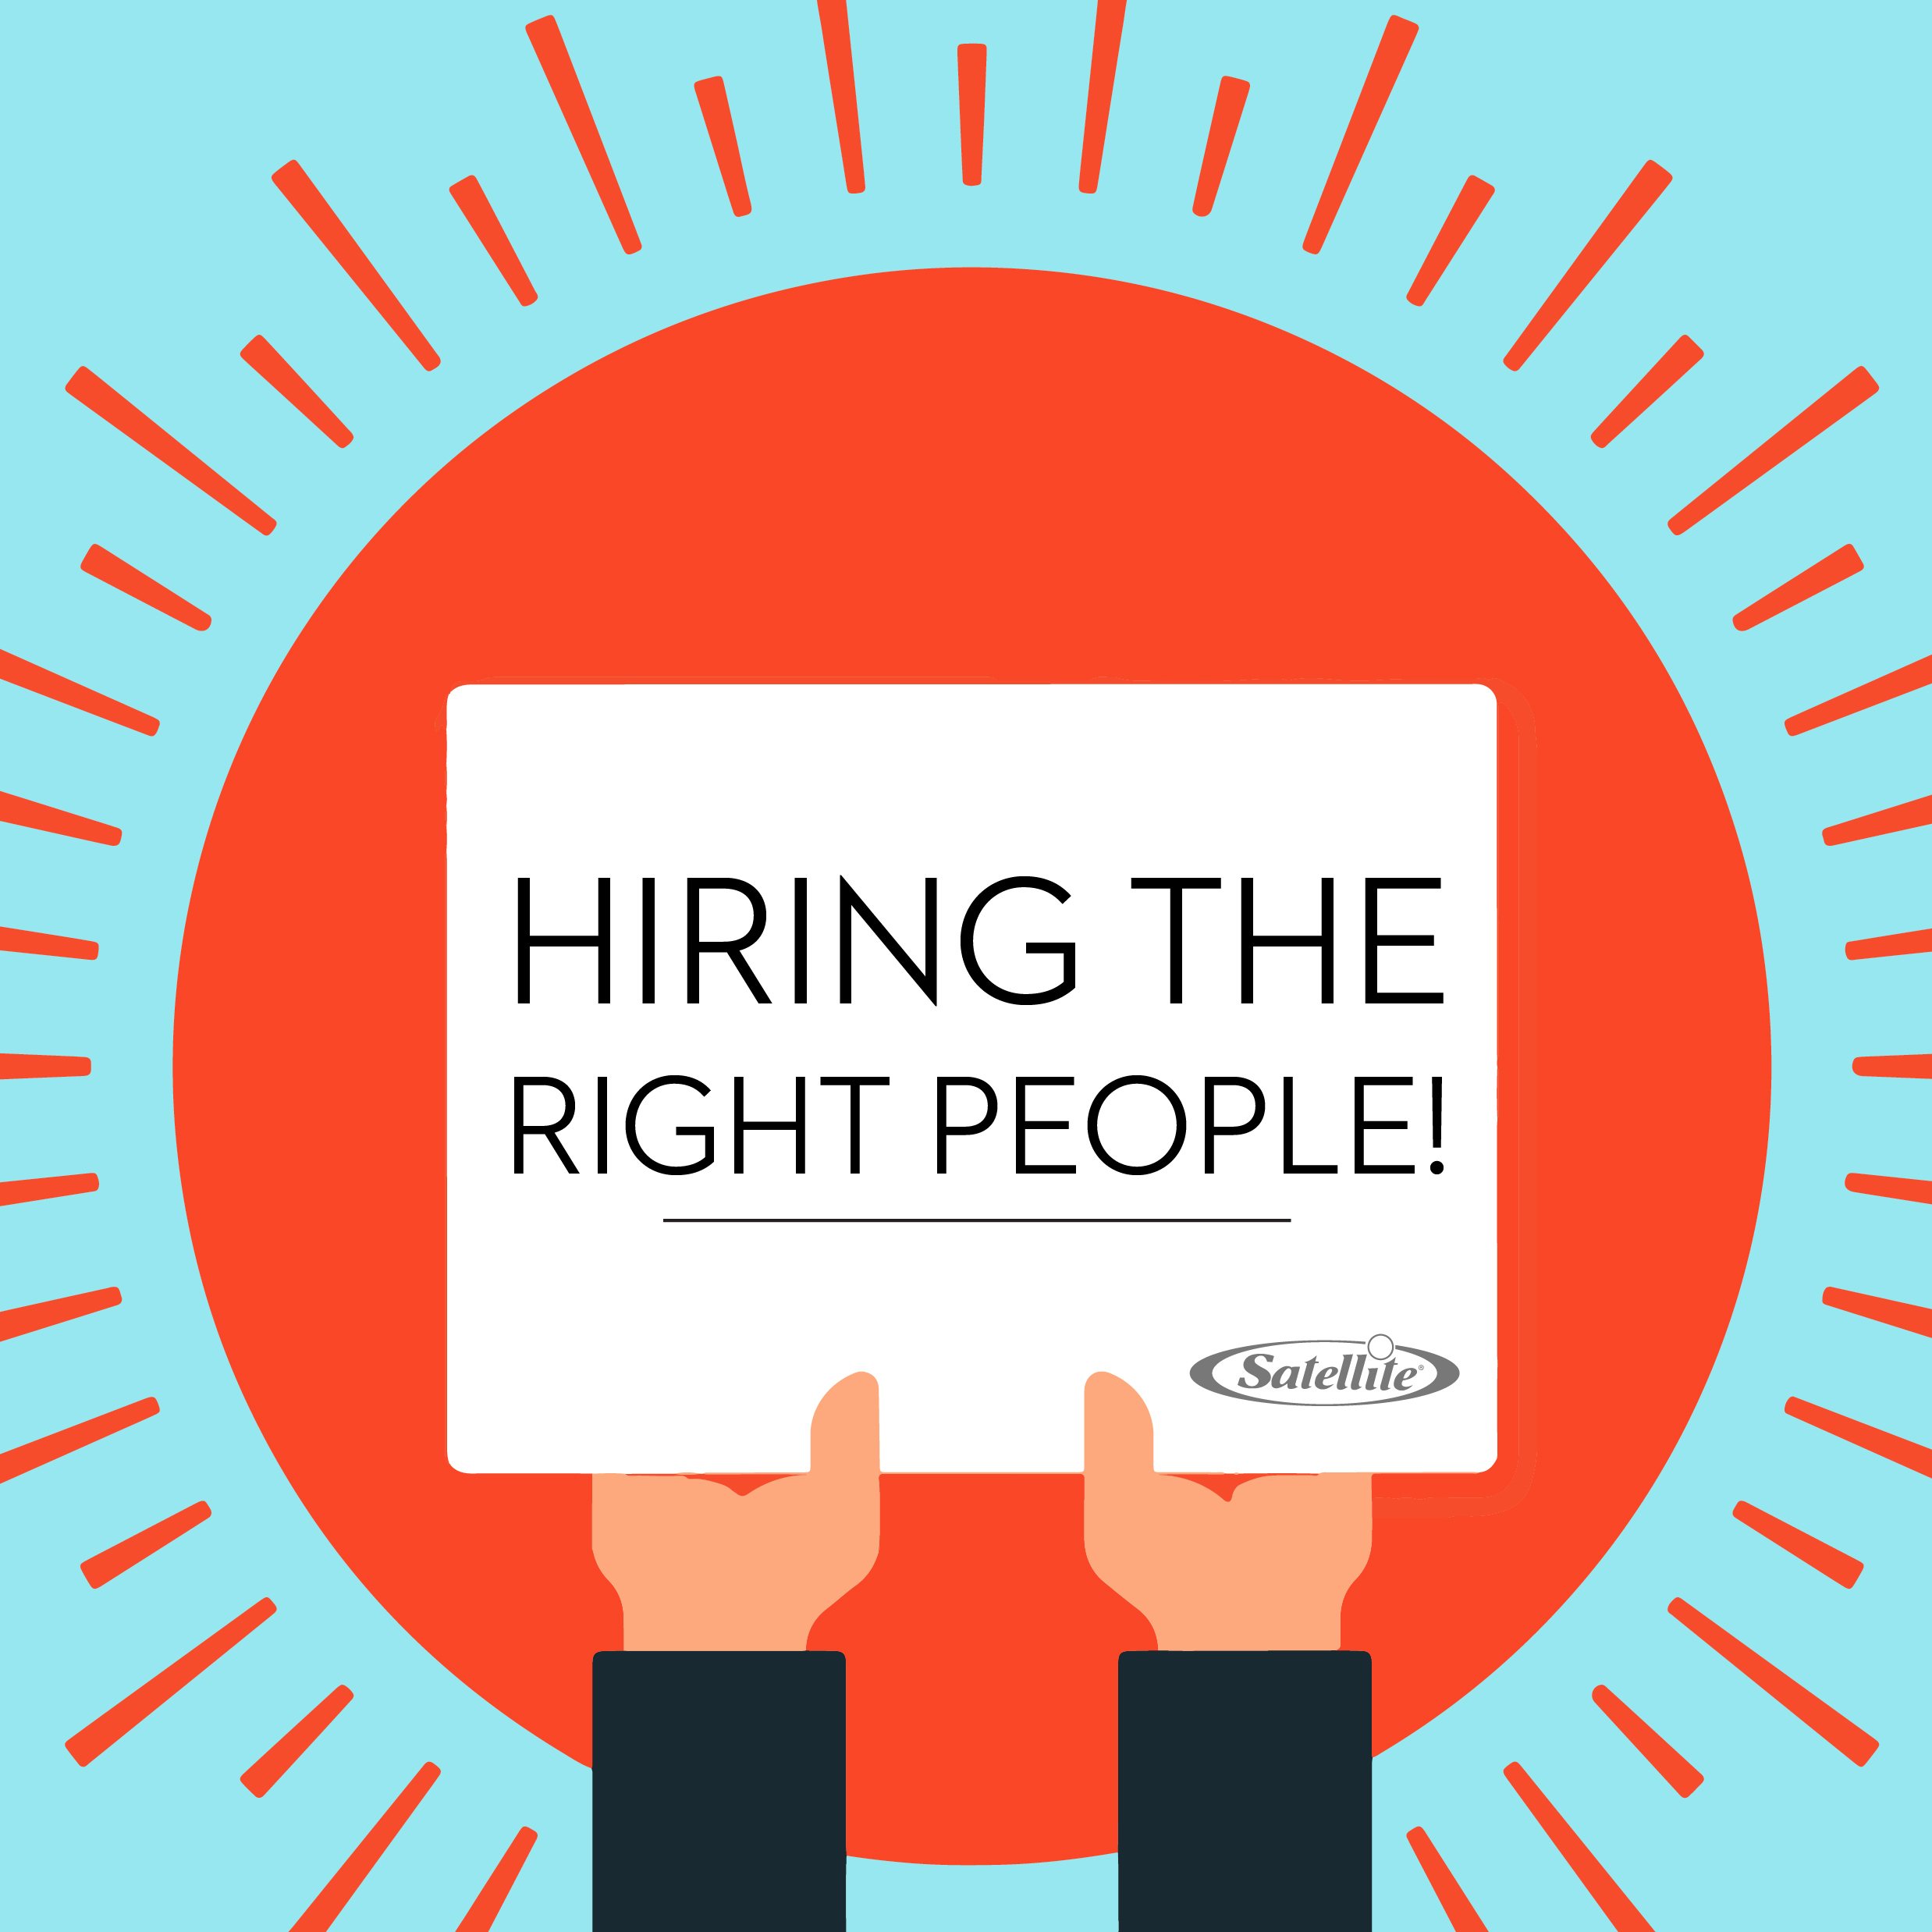 Hiring the right people!